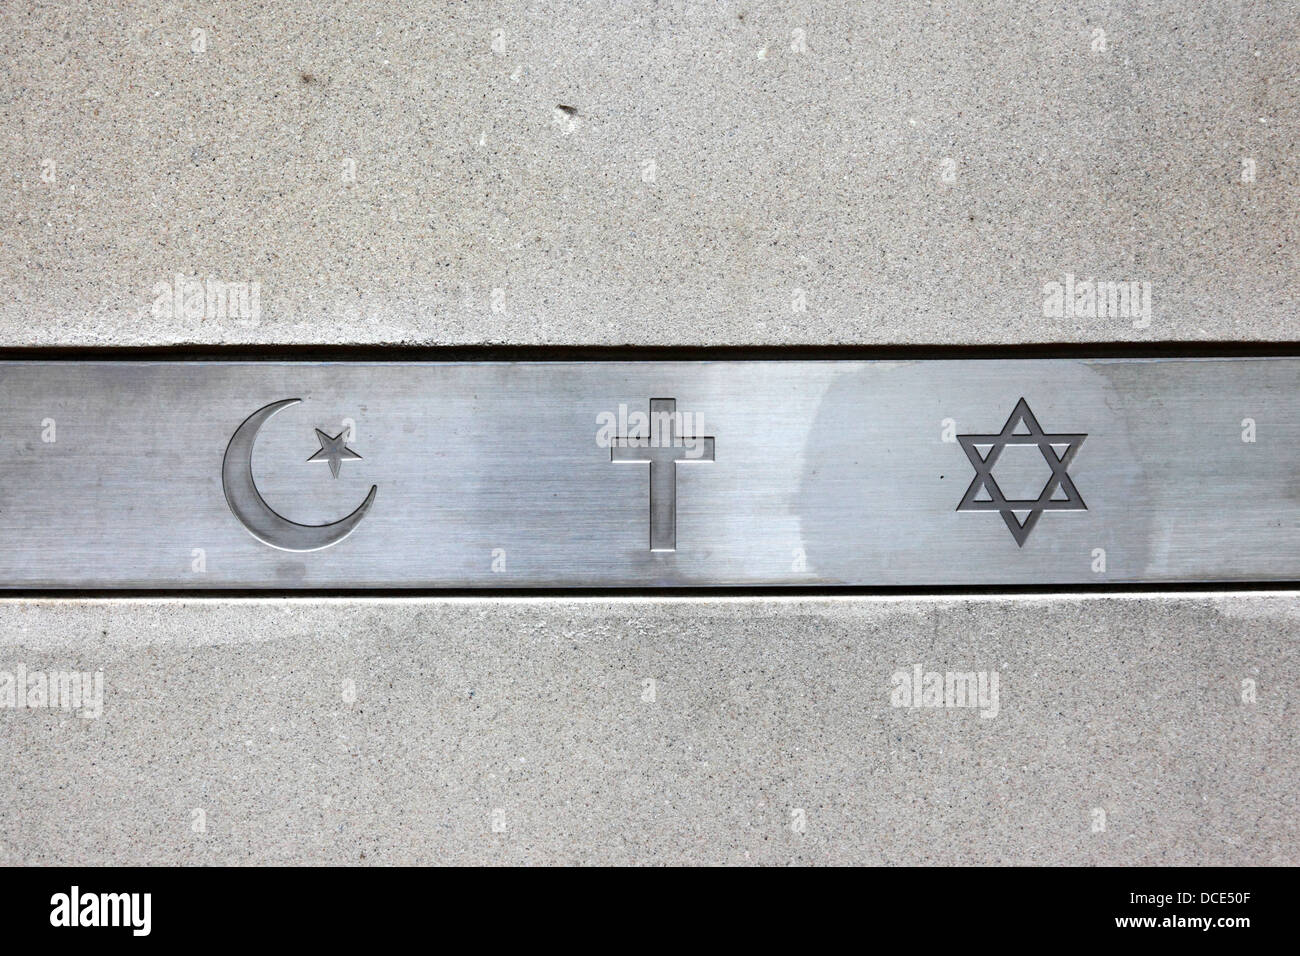 Symbols Of Islam Stock Photos Symbols Of Islam Stock Images Alamy